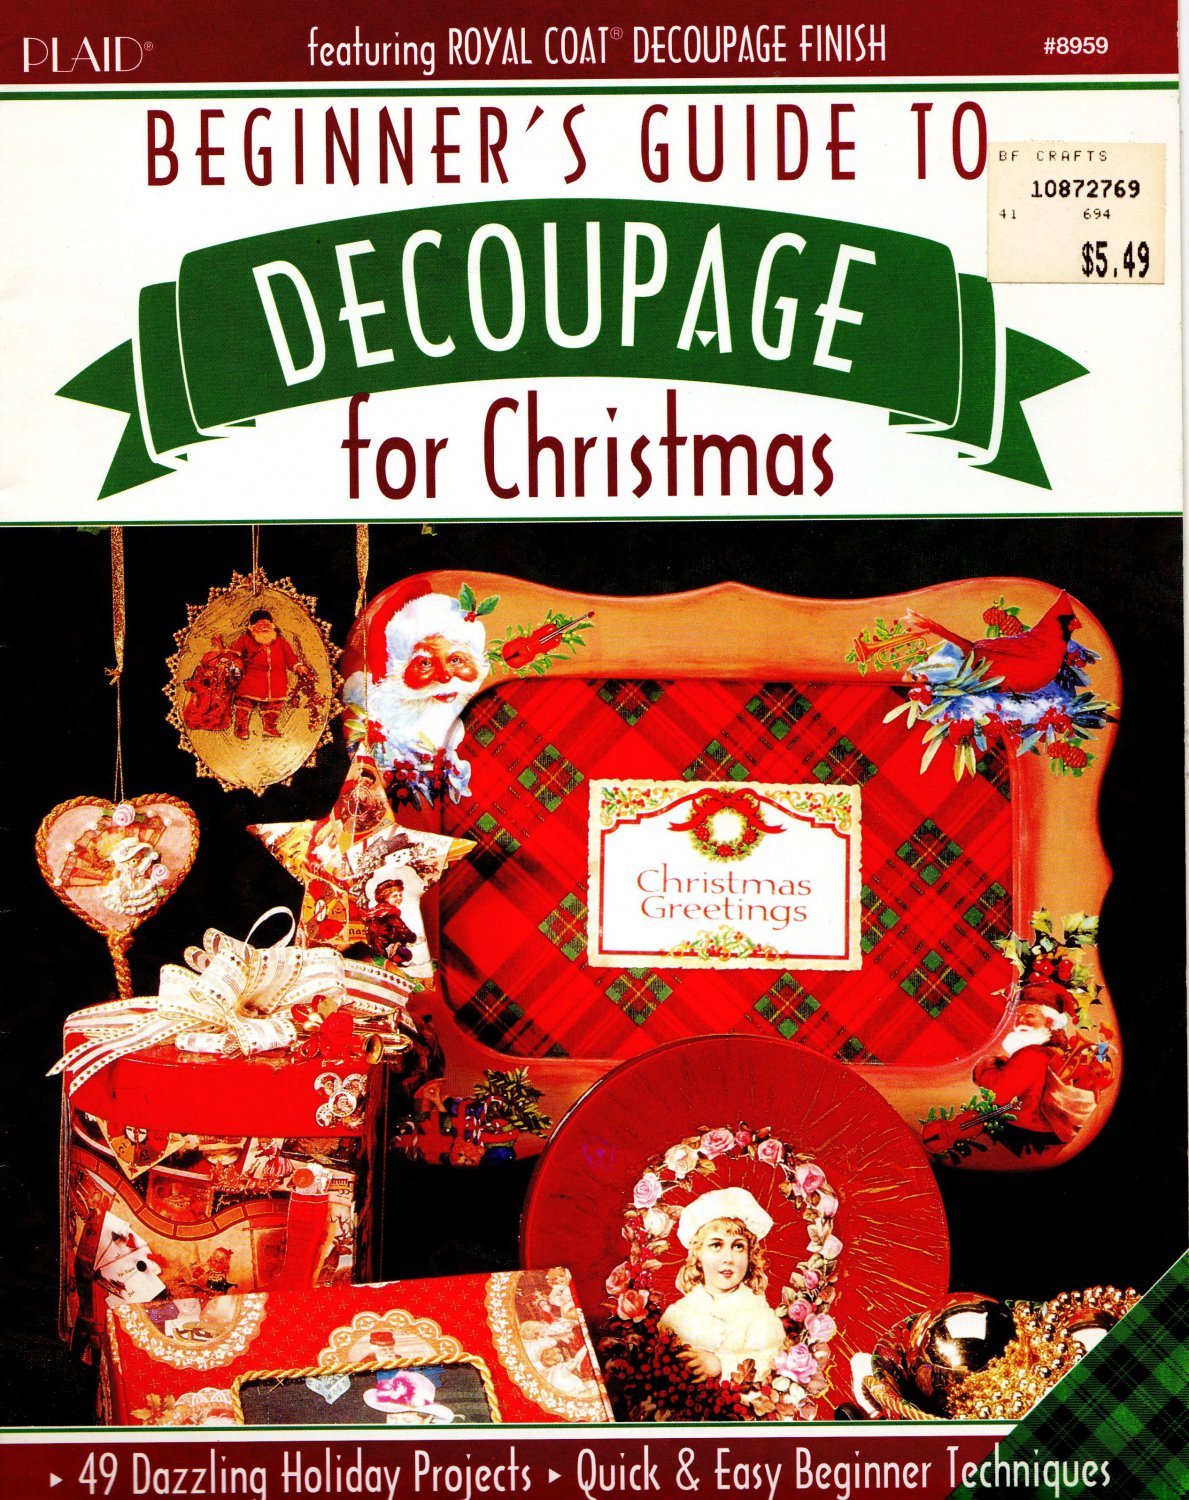 NEW*BEGINNER'S GUIDE TO DECOUPAGE FOR CHRISTMAS*1994*PLAID ENTERPRISES*OUT OF PRINT*